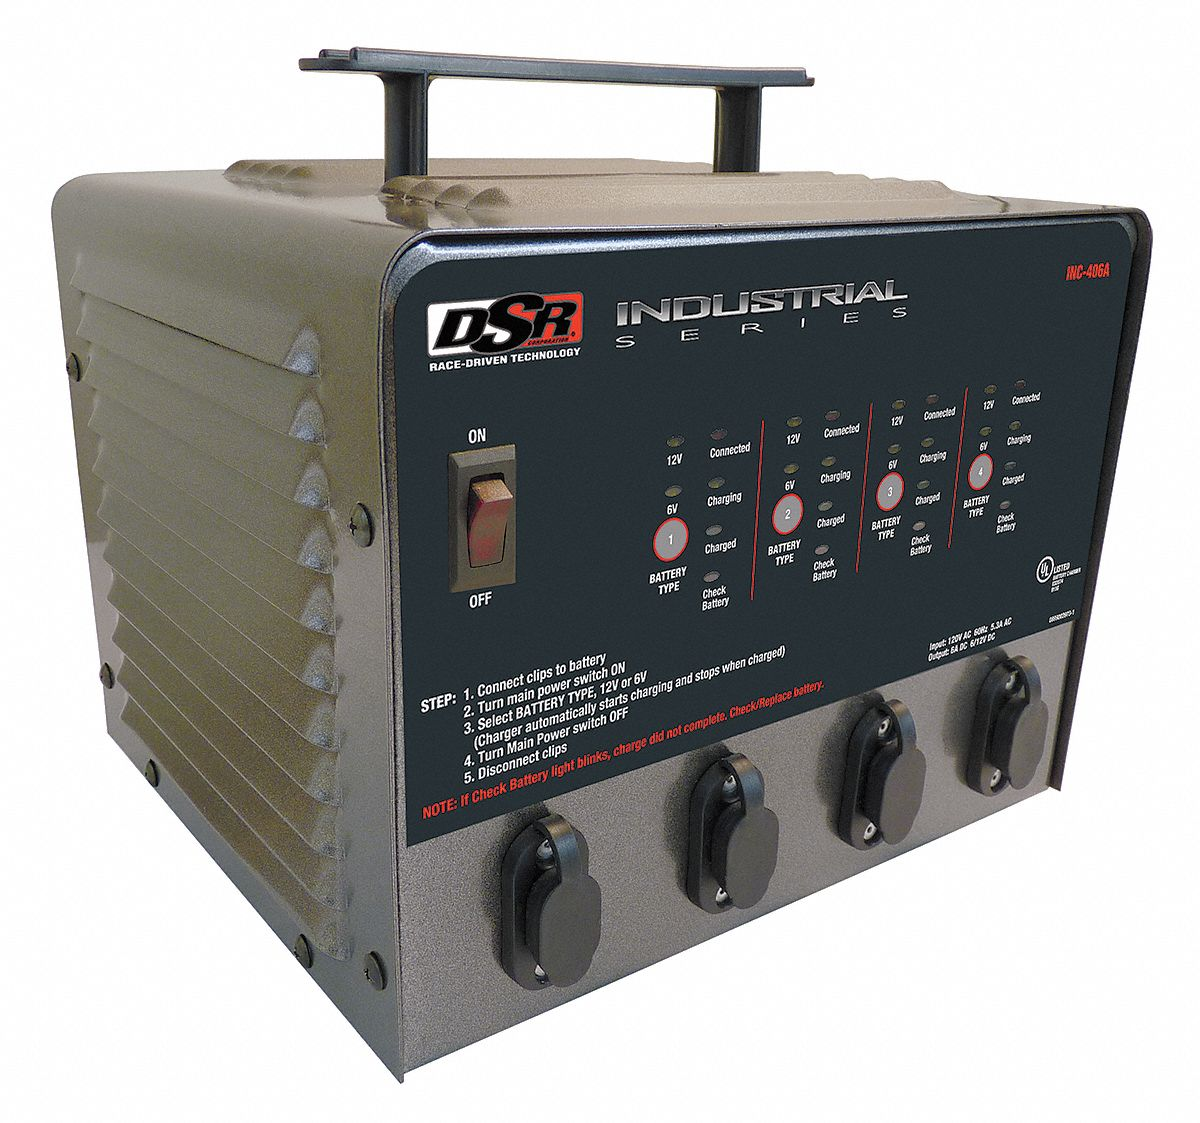 The 24volt Supply Is Electrically Isolated From The Digital Circuits